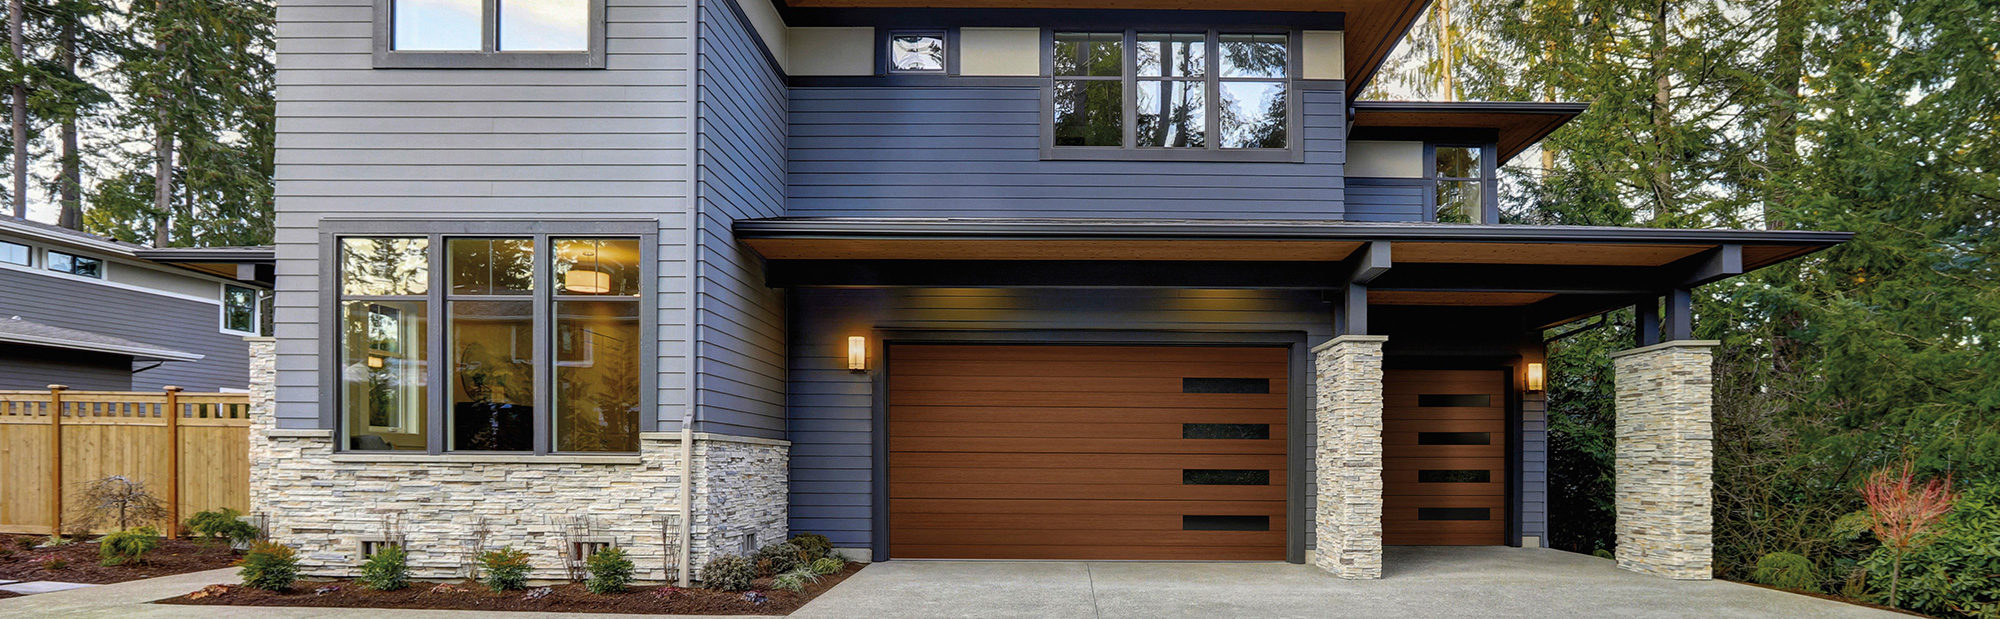 Is your garage door broken? Do you need servicing, repairs or a replacement?